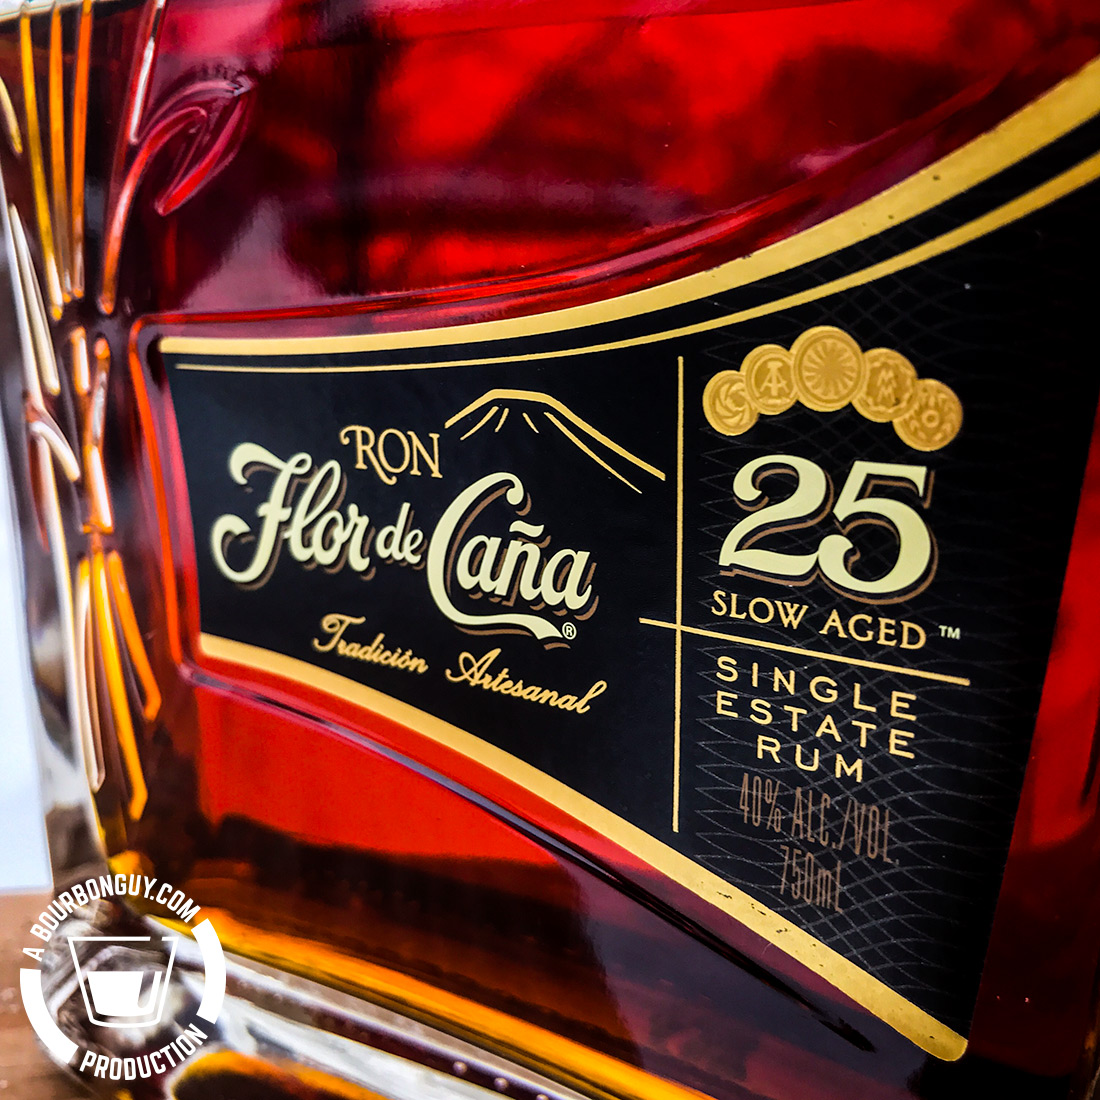 IMAGE: Front label of Flor de Caña 25 Year Old Rum